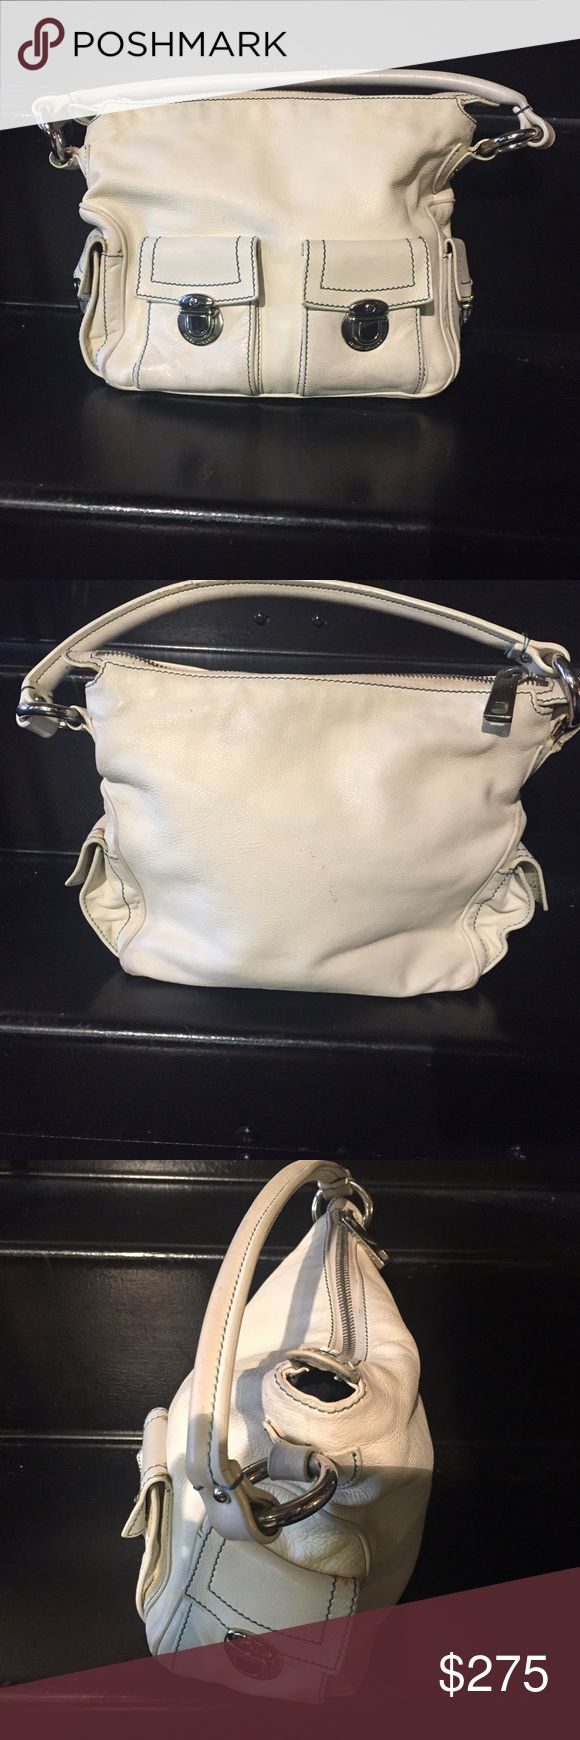 Marc Jacobs cream shoulder bag w/ silver hardware 100% Authentic Marc Jacobs cream shoulder bag with silver hardware and blue stitching detail. Price reflects Pre-loved condition. Some scratches on interior walls from use. Overall good condition. Classic bag great for Spring/Summer. Note this is Marc Jacobs not Marc by Marc Jacobs. This bag originally came in 2 sizes this is the smaller of the 2 and not the XL oversize version. Make an offer! Marc Jacobs Bags